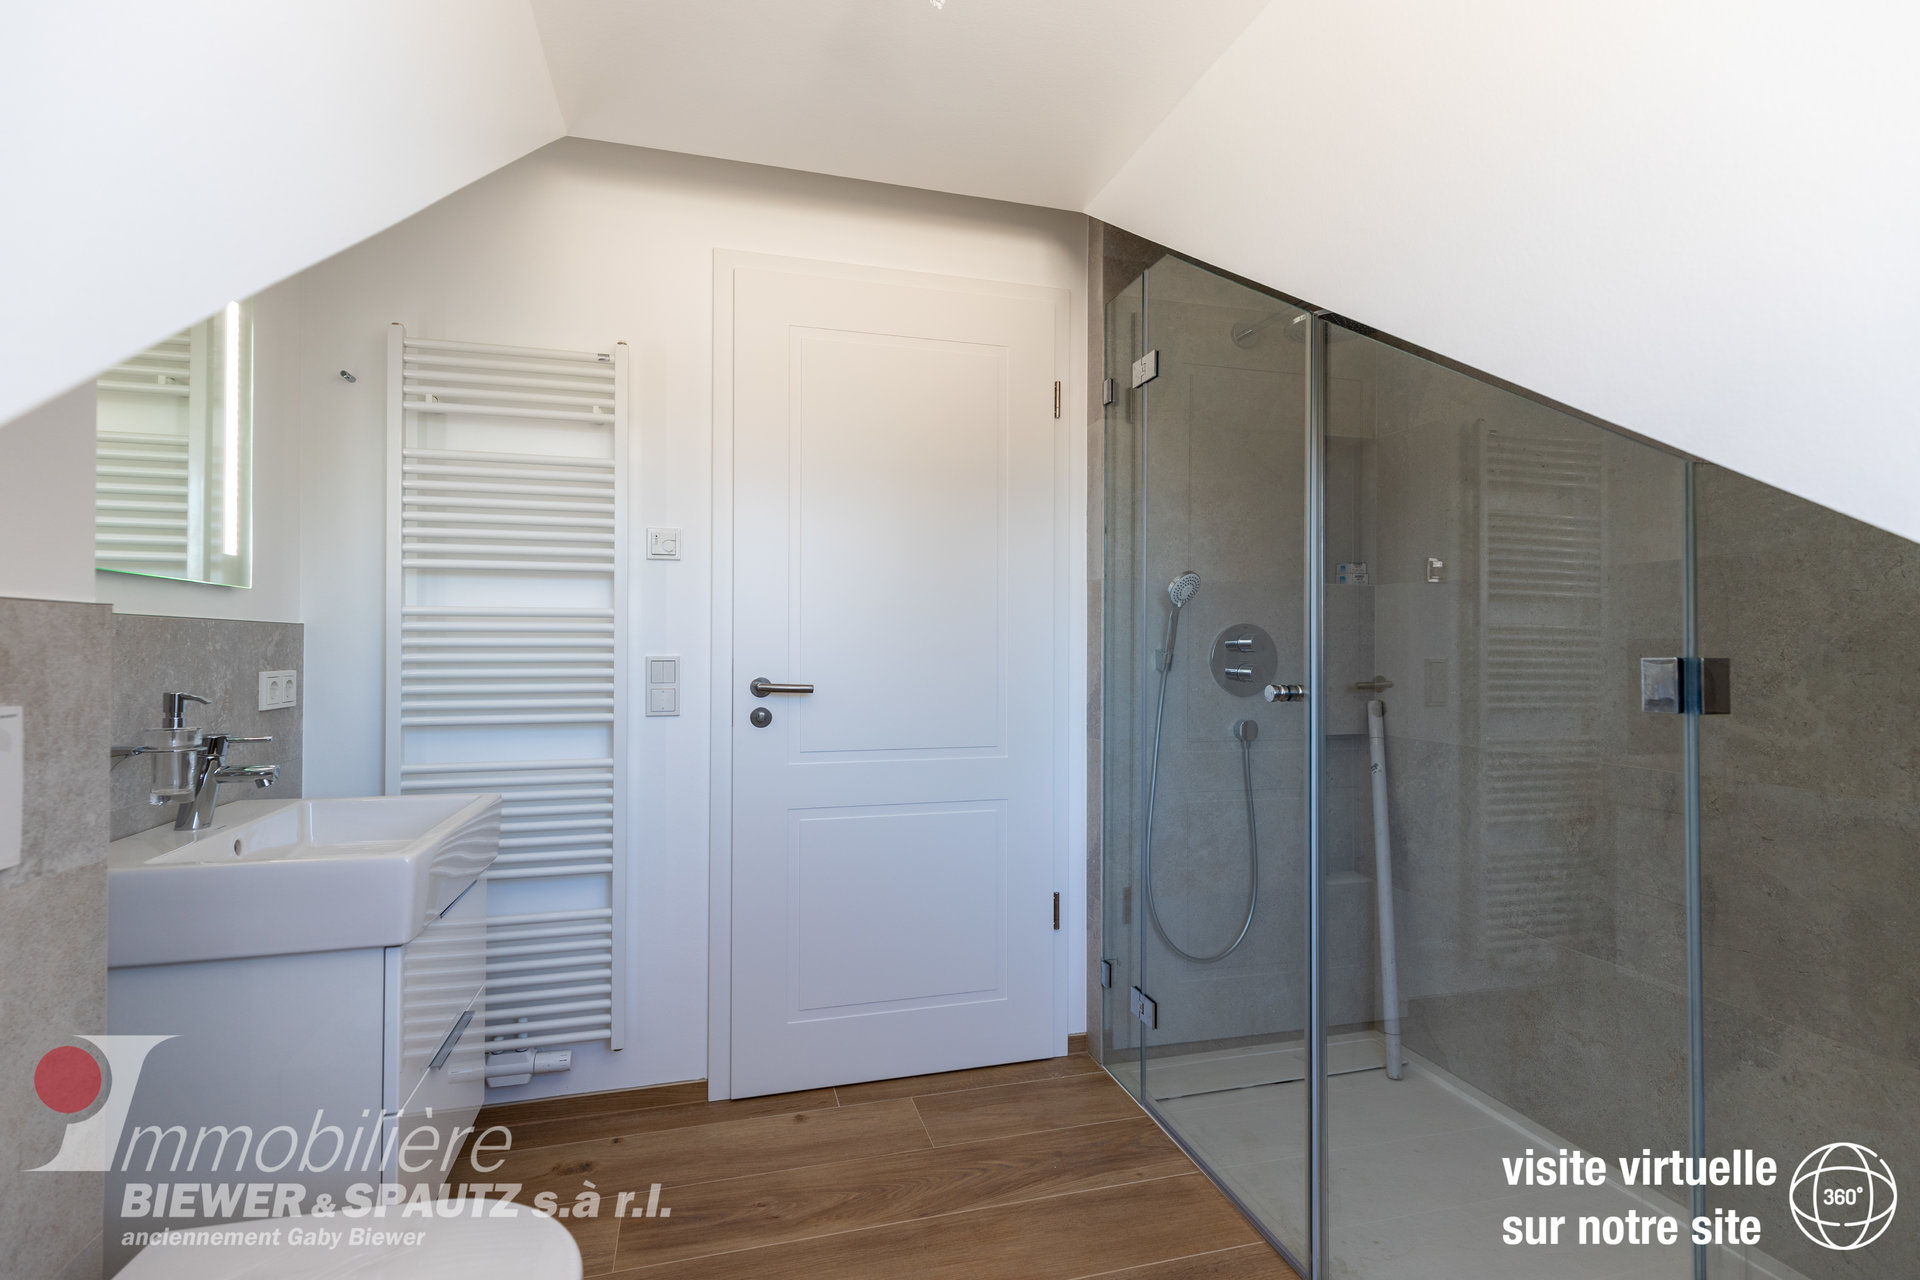 RENTED - Apartment-duplex with 2 bedrooms in Berbourg